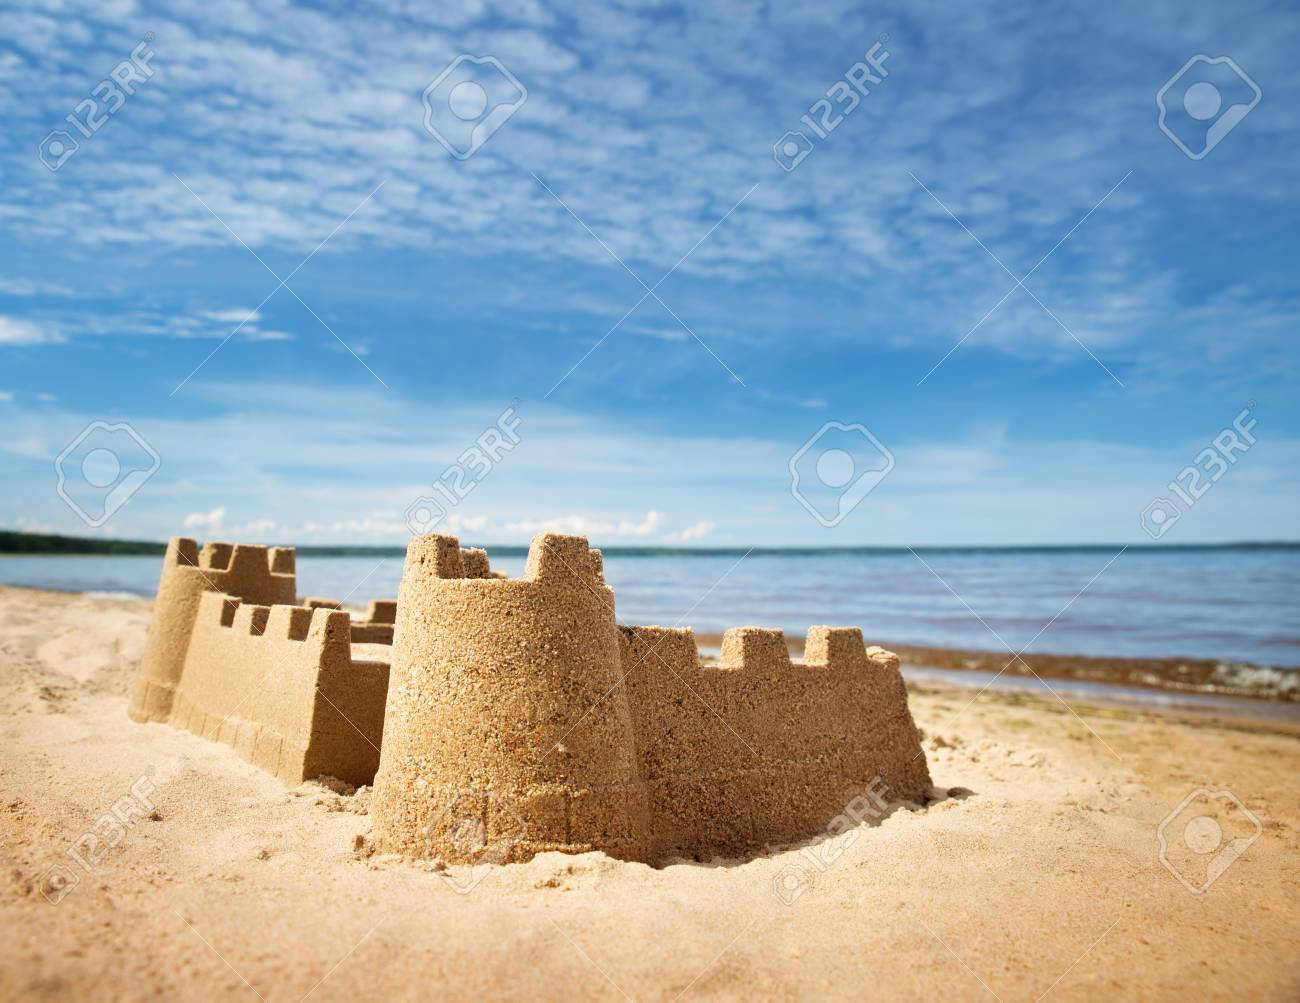 Sandcastle on the sea in summertime - 97186582